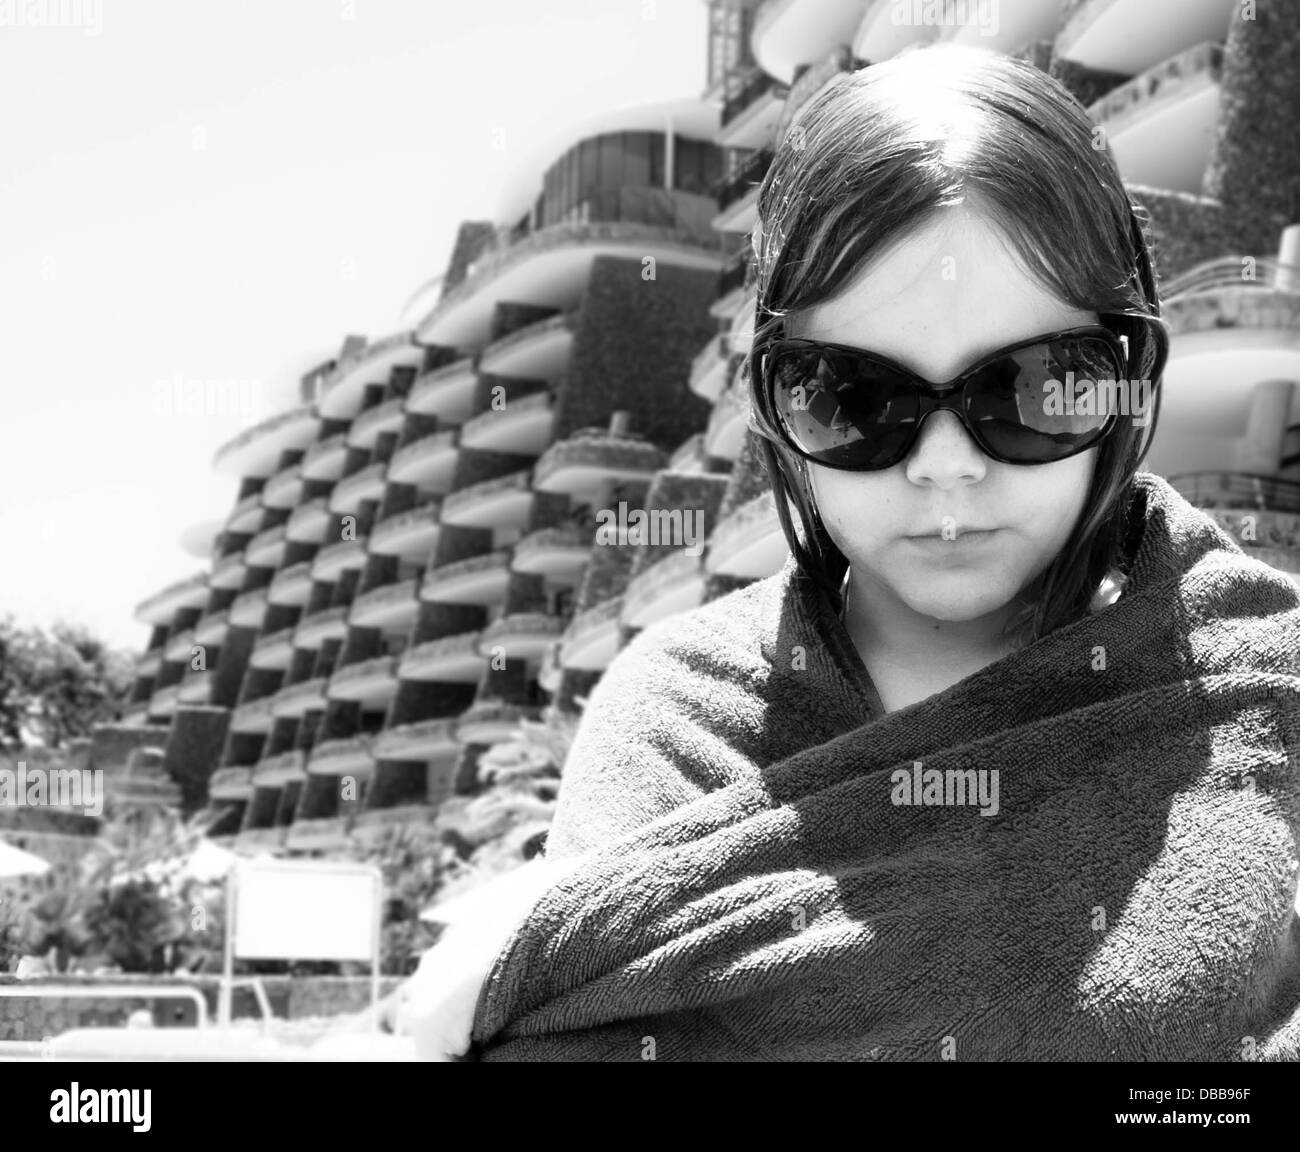 pre-teen girl, big sun glasses looking down. wet hair. towel wrapped around her shoulders. black and white. old - Stock Image